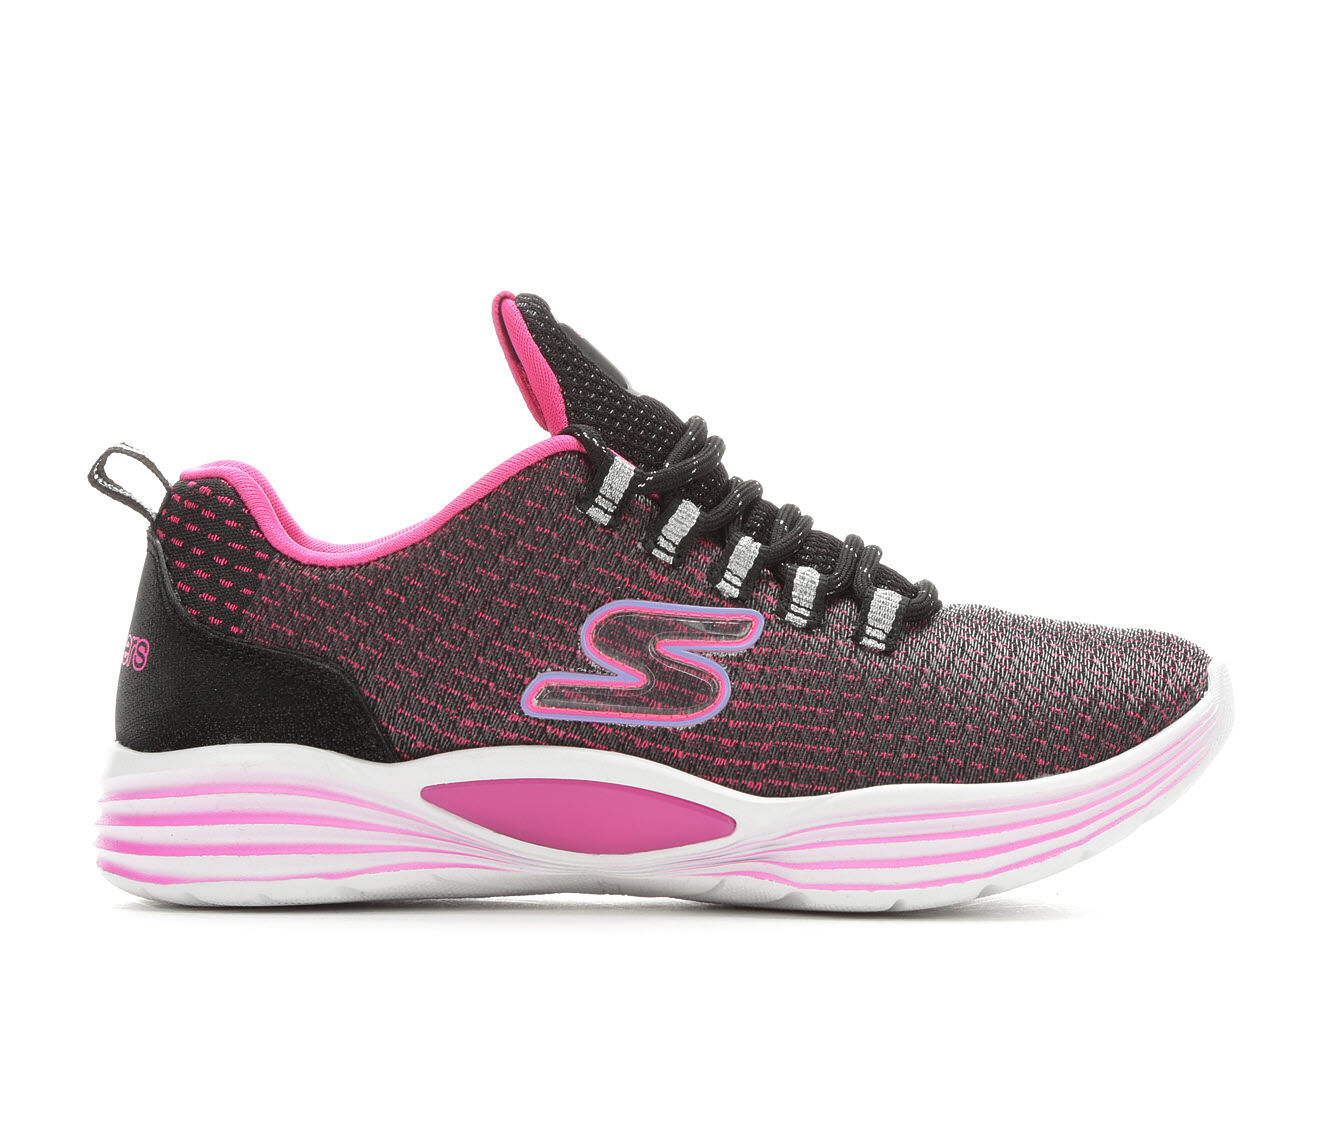 Girls' S Lights: Luminators Light Up Athletic Sneakers from